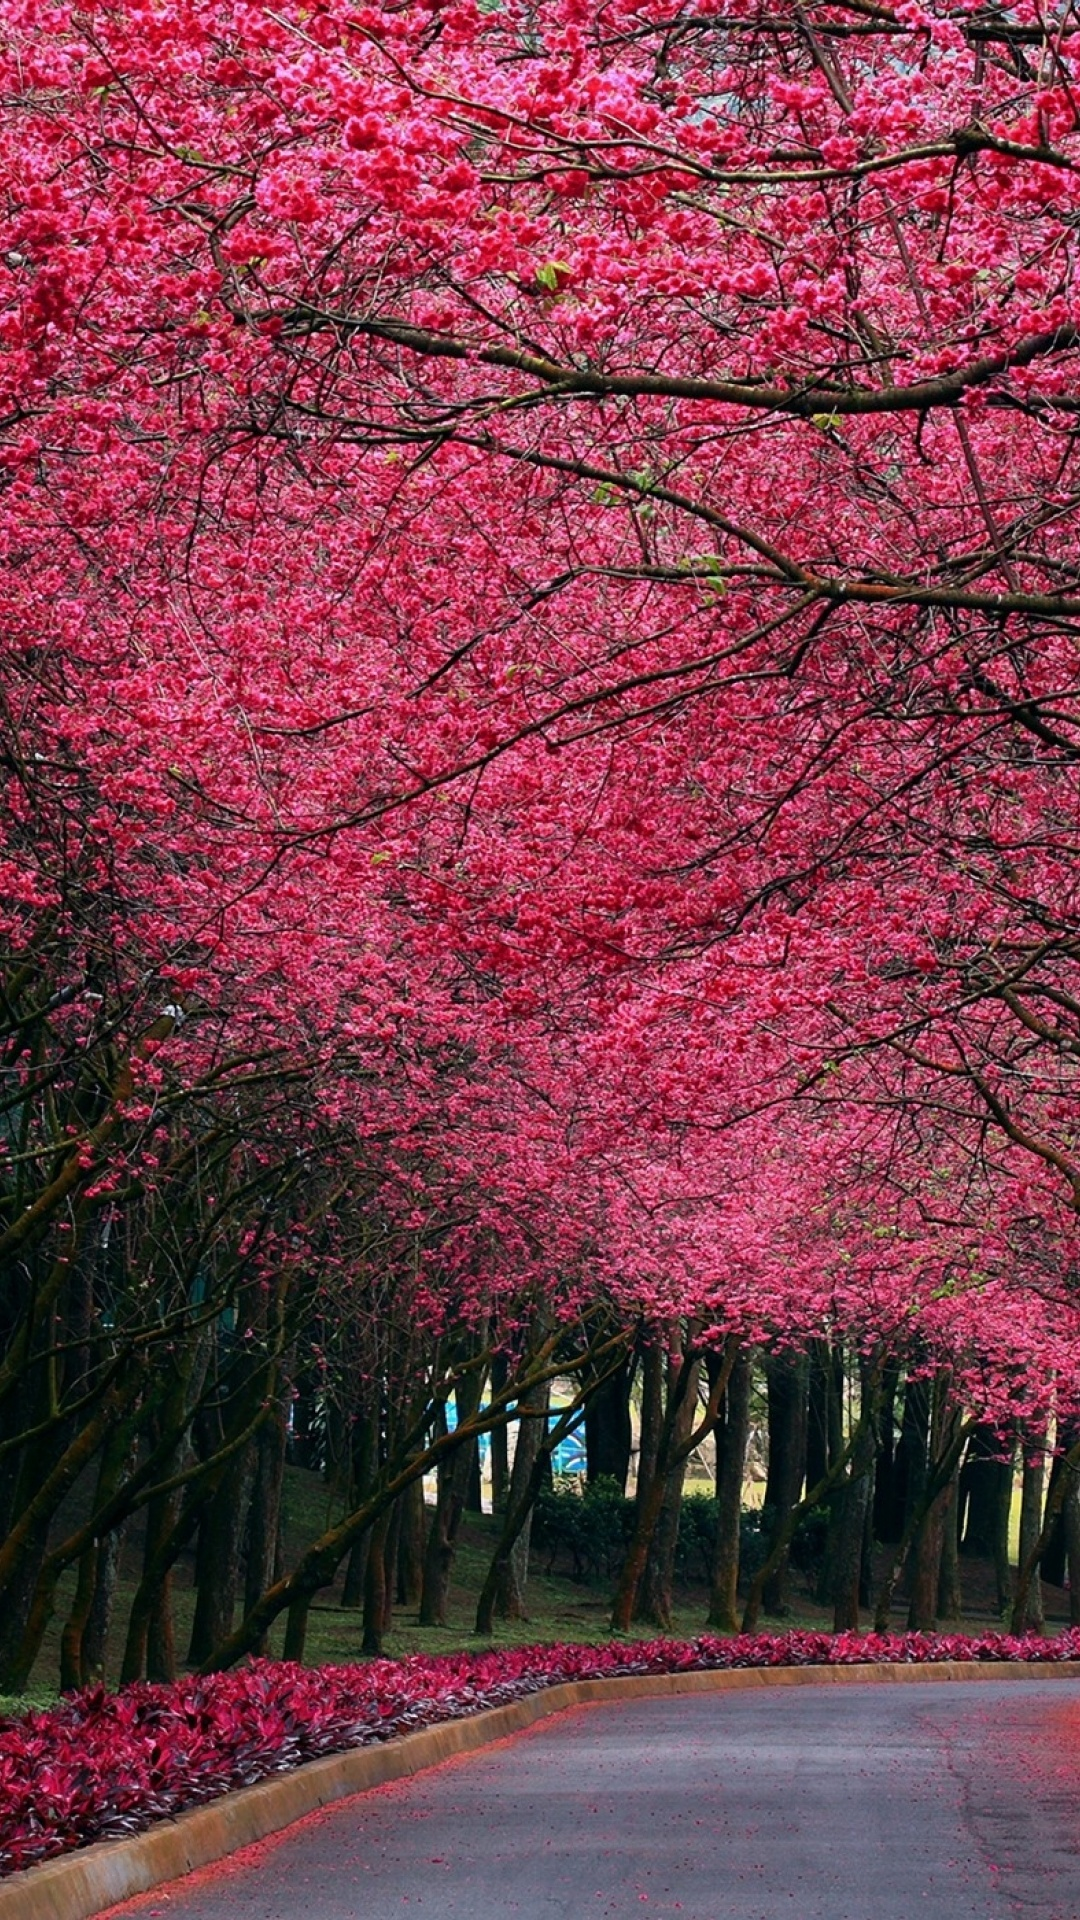 1080x1920 Pink Trees Amp Road Spring Time Galaxy S4 Wallpaper